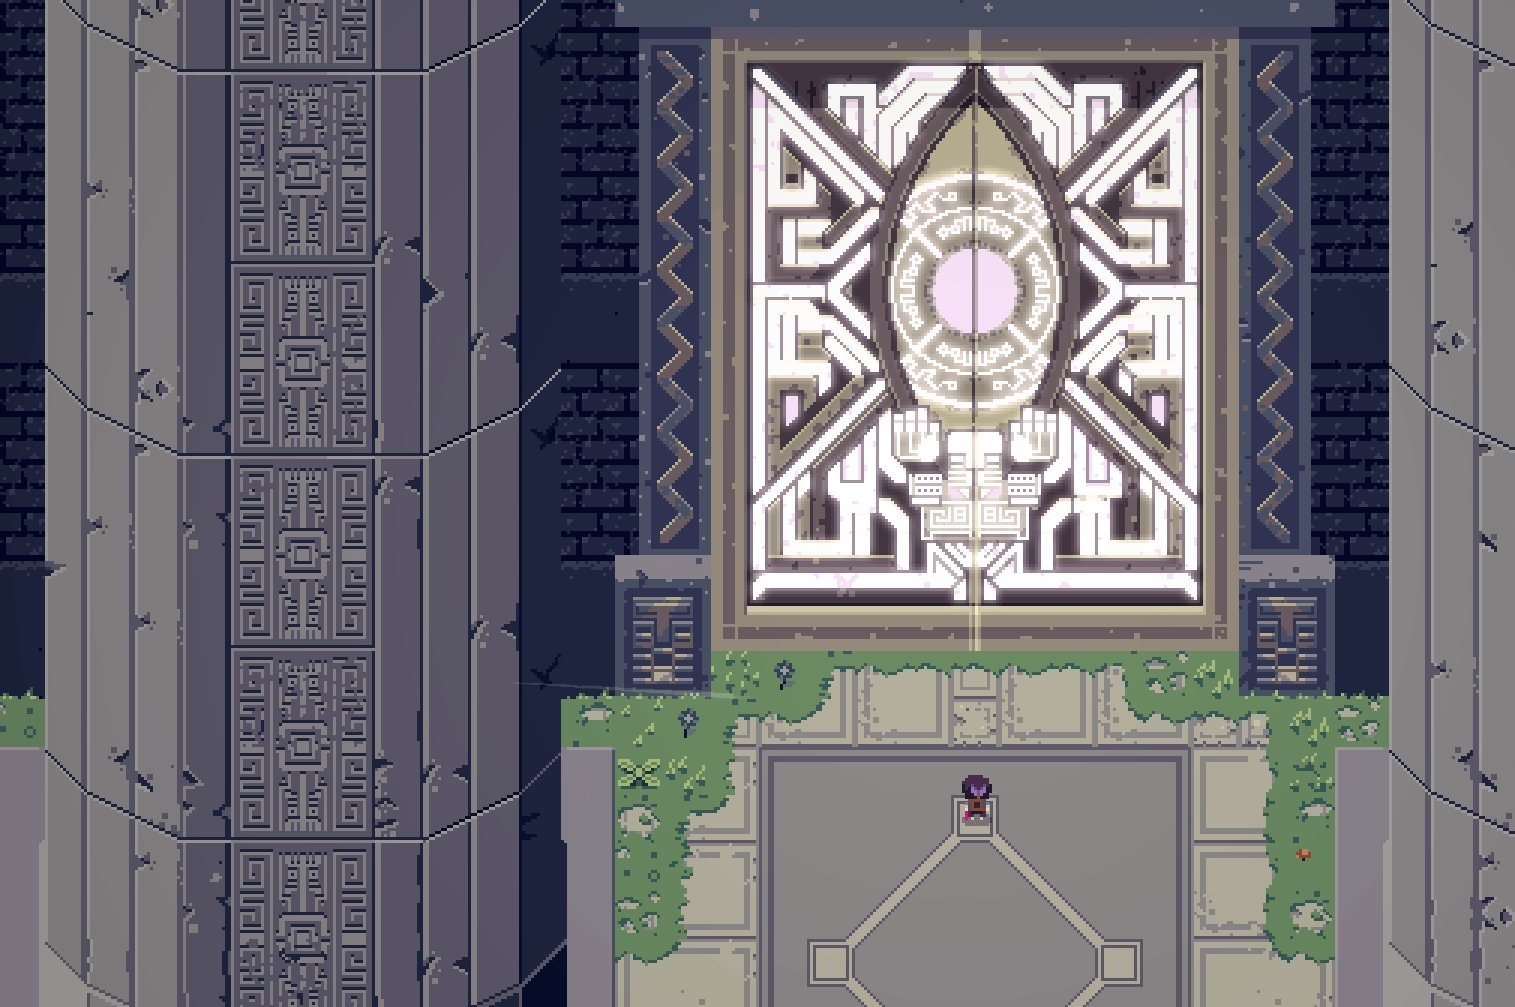 titan-souls-is-all-your-favourite-games-rolled-into-one-1403714518705